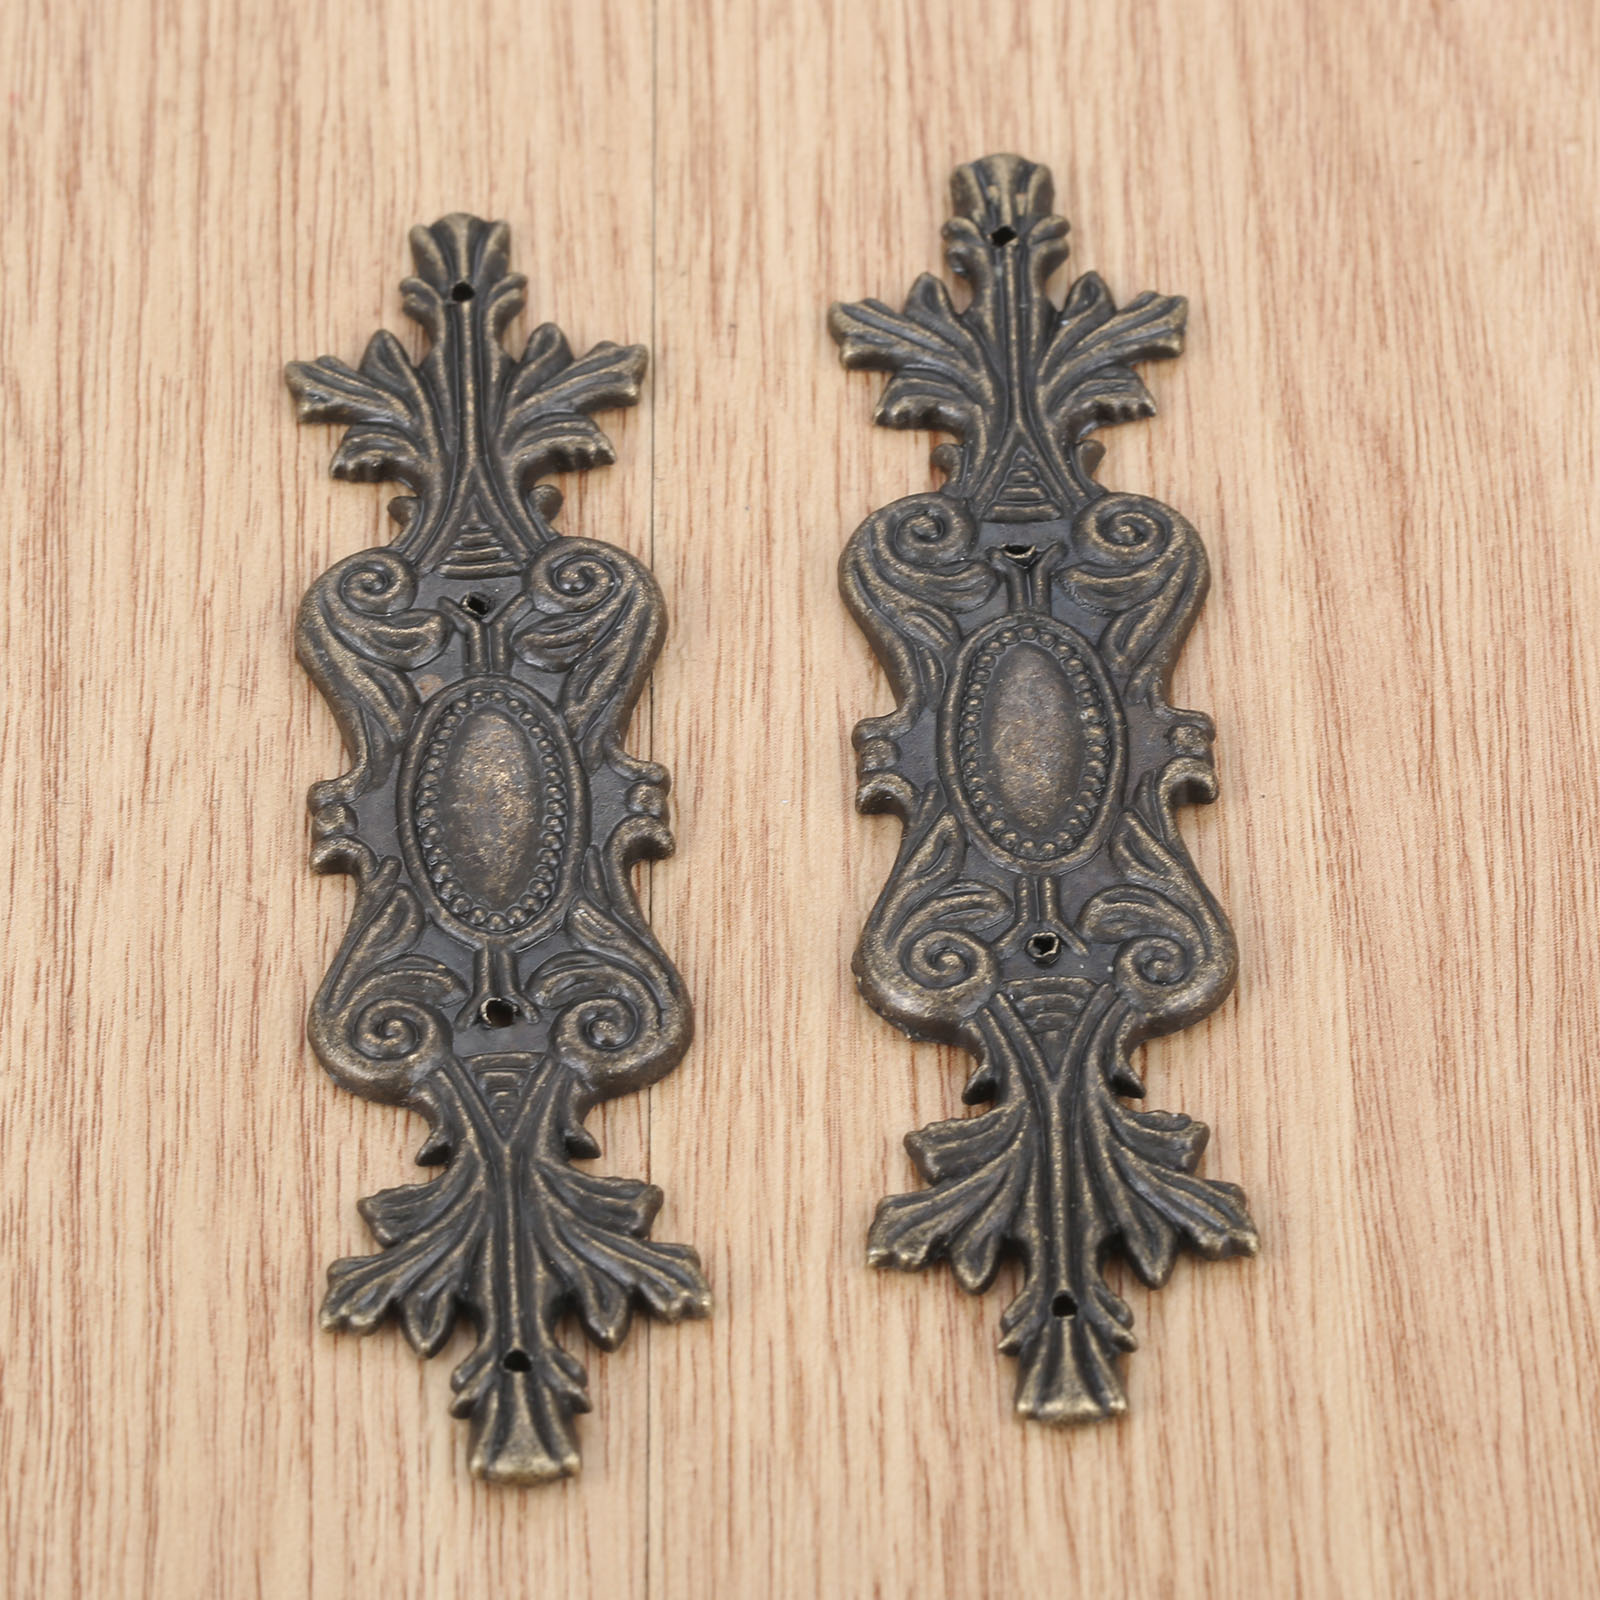 2Pcs Antique Furniture Corner Brackets 100*20mm Jewelry Box Book Album Corner Protector Metal Embellishments Scrapbooking